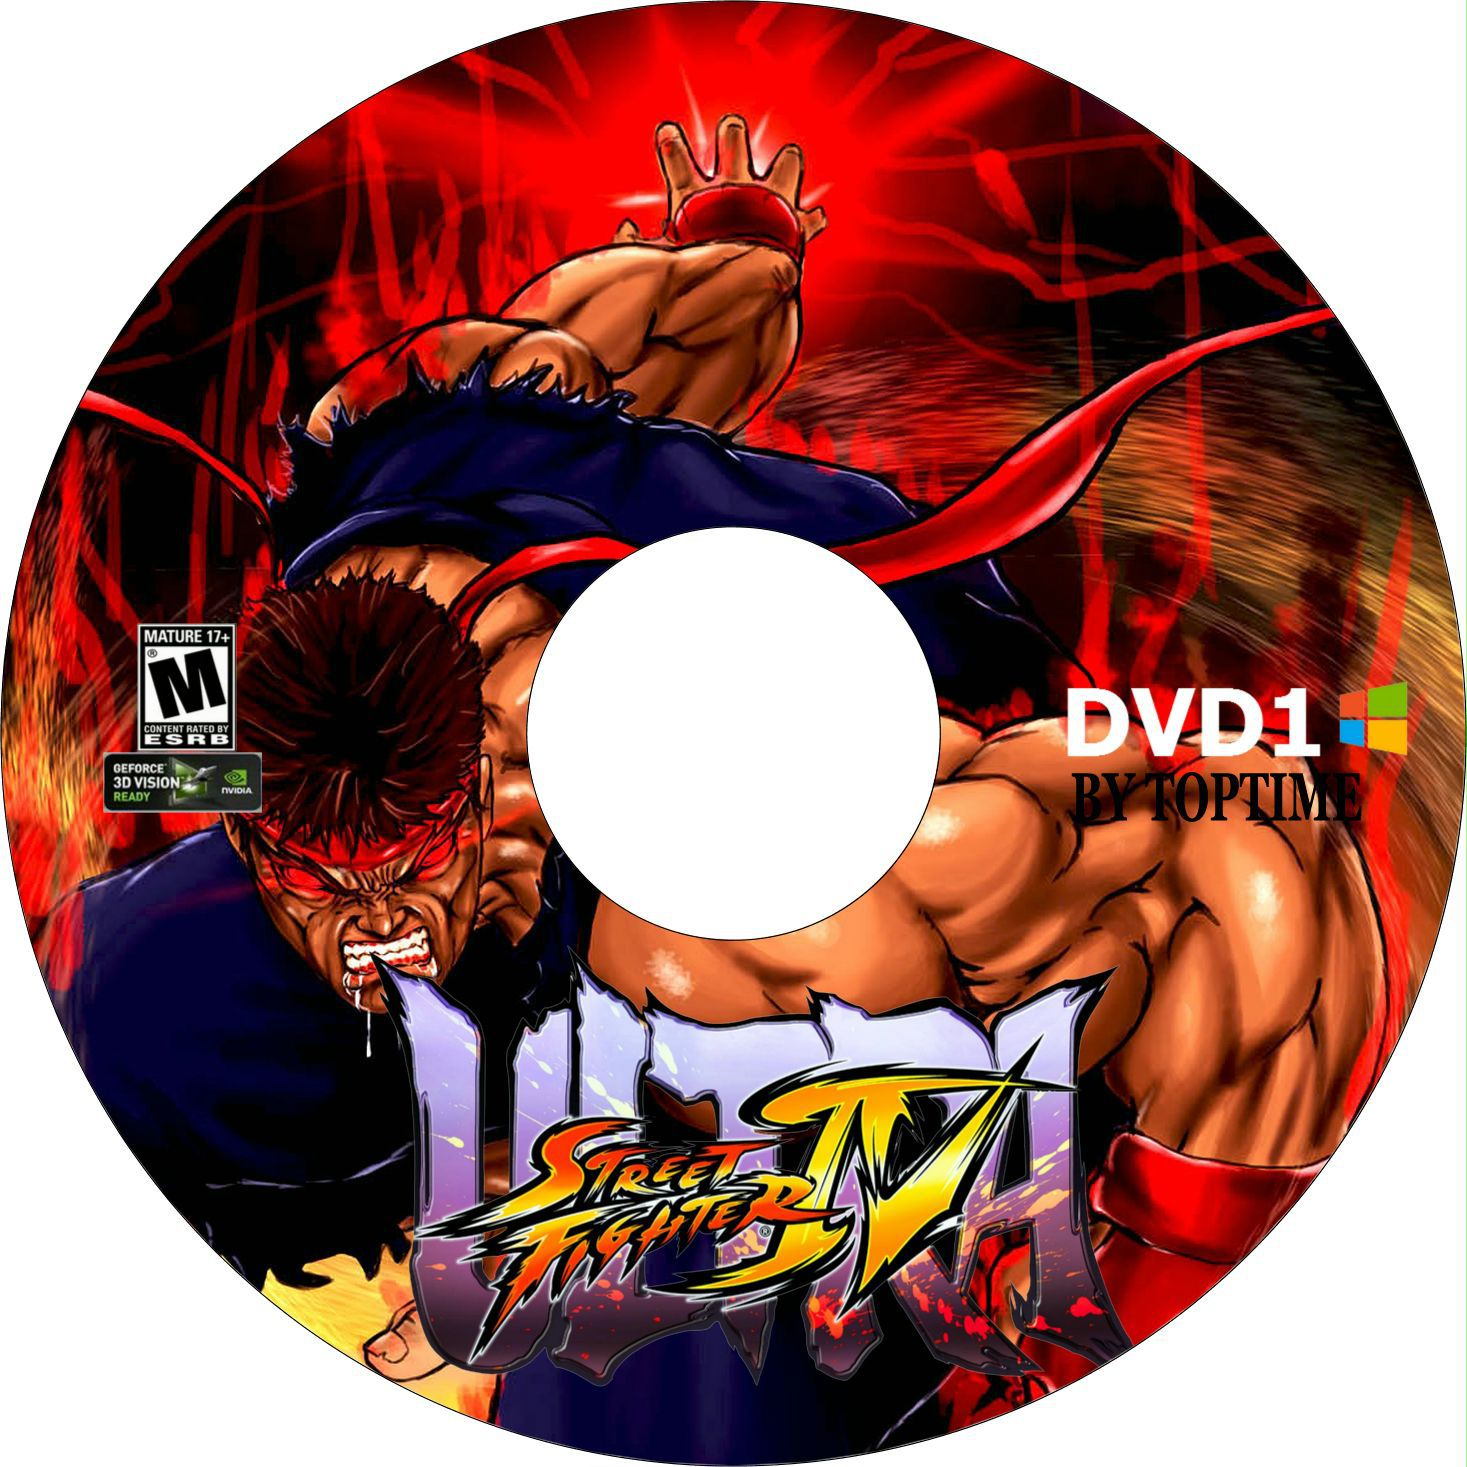 Label Ultra Street Fighter IV DVD 1 PC